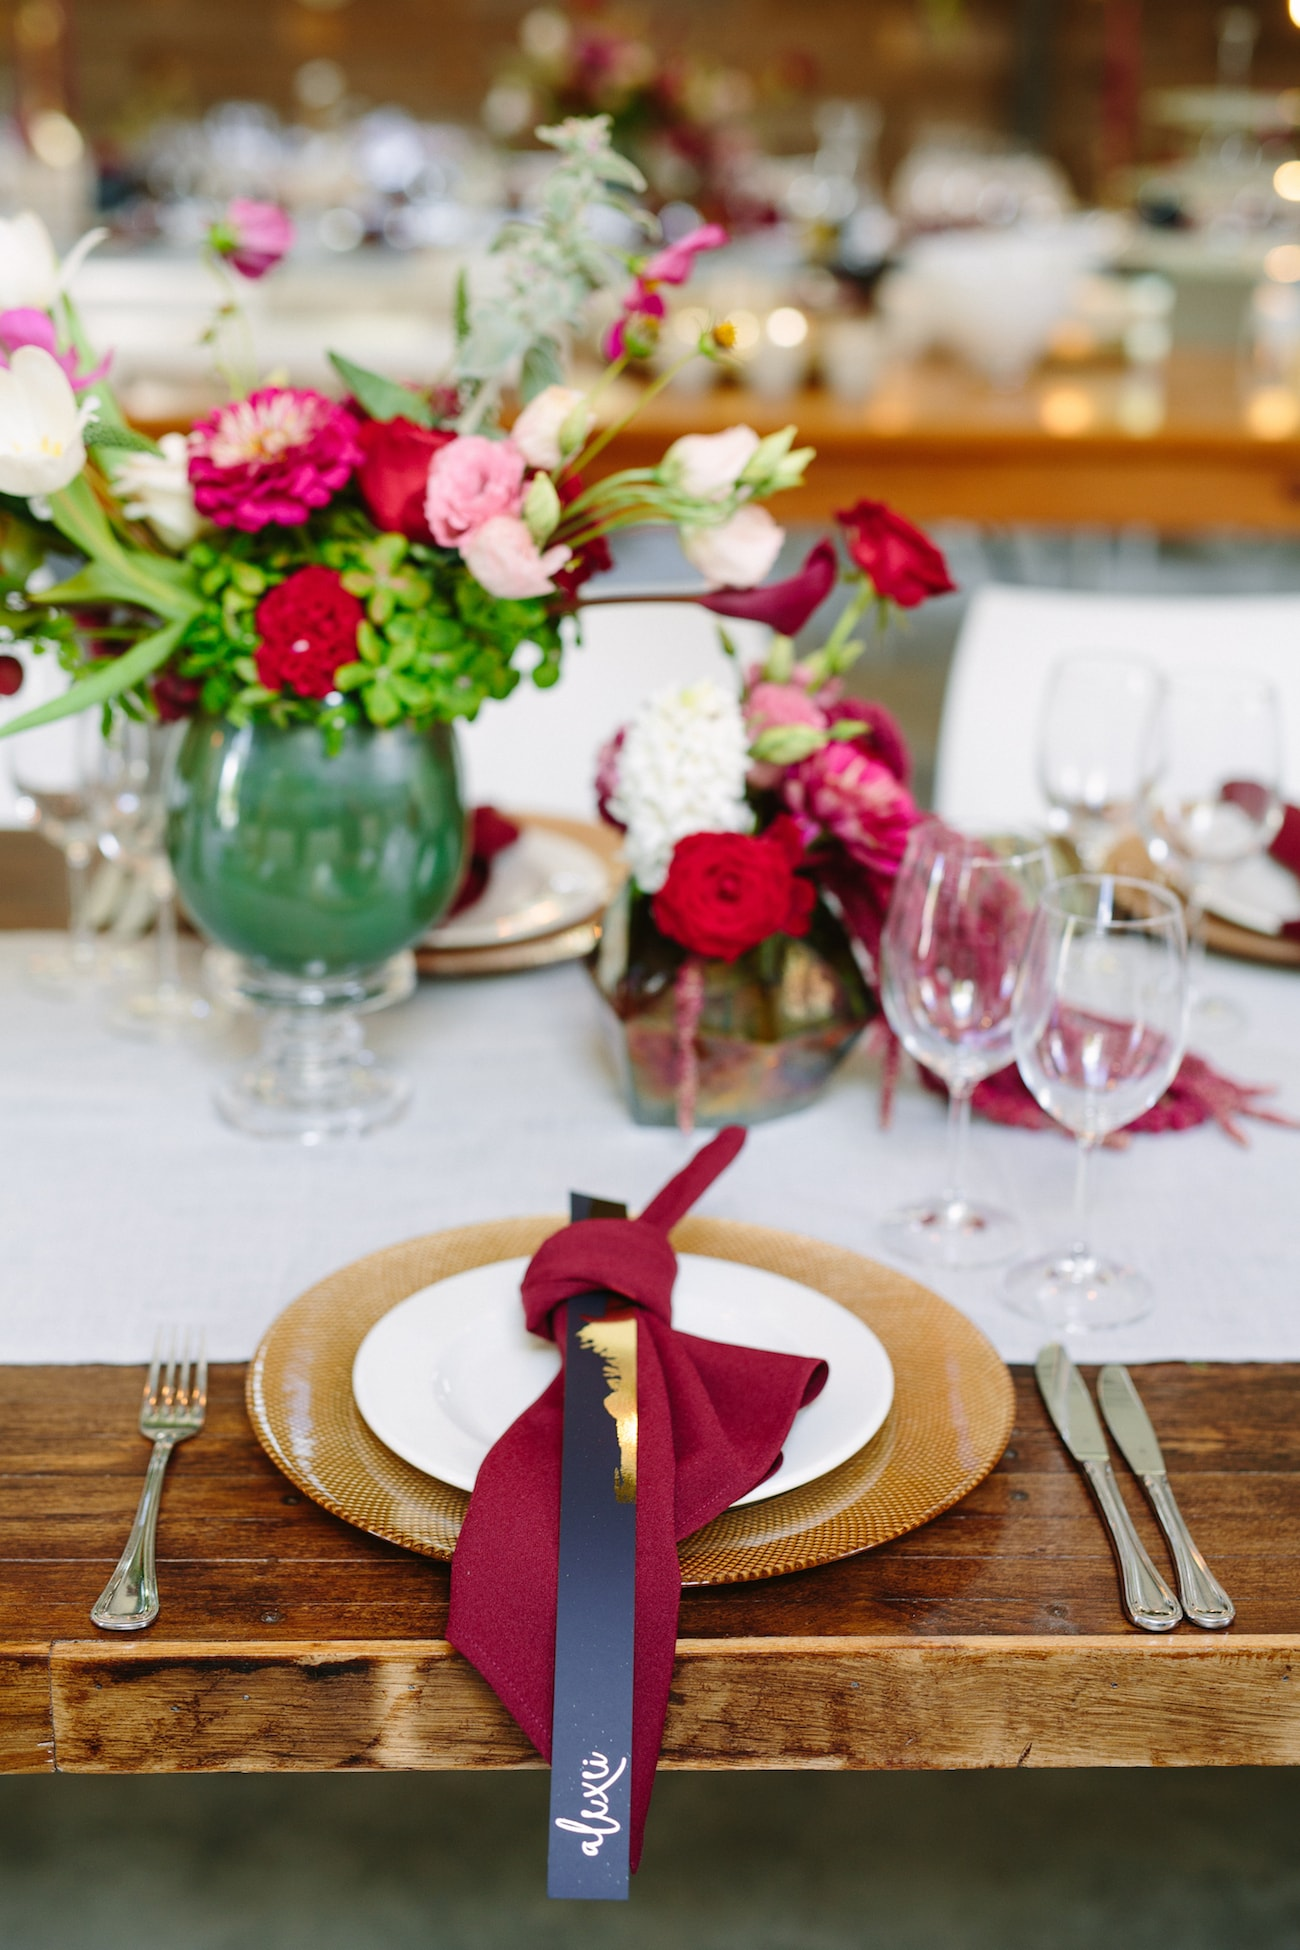 Jewel Tone Wedding Decor | Image: Tasha Seccombe